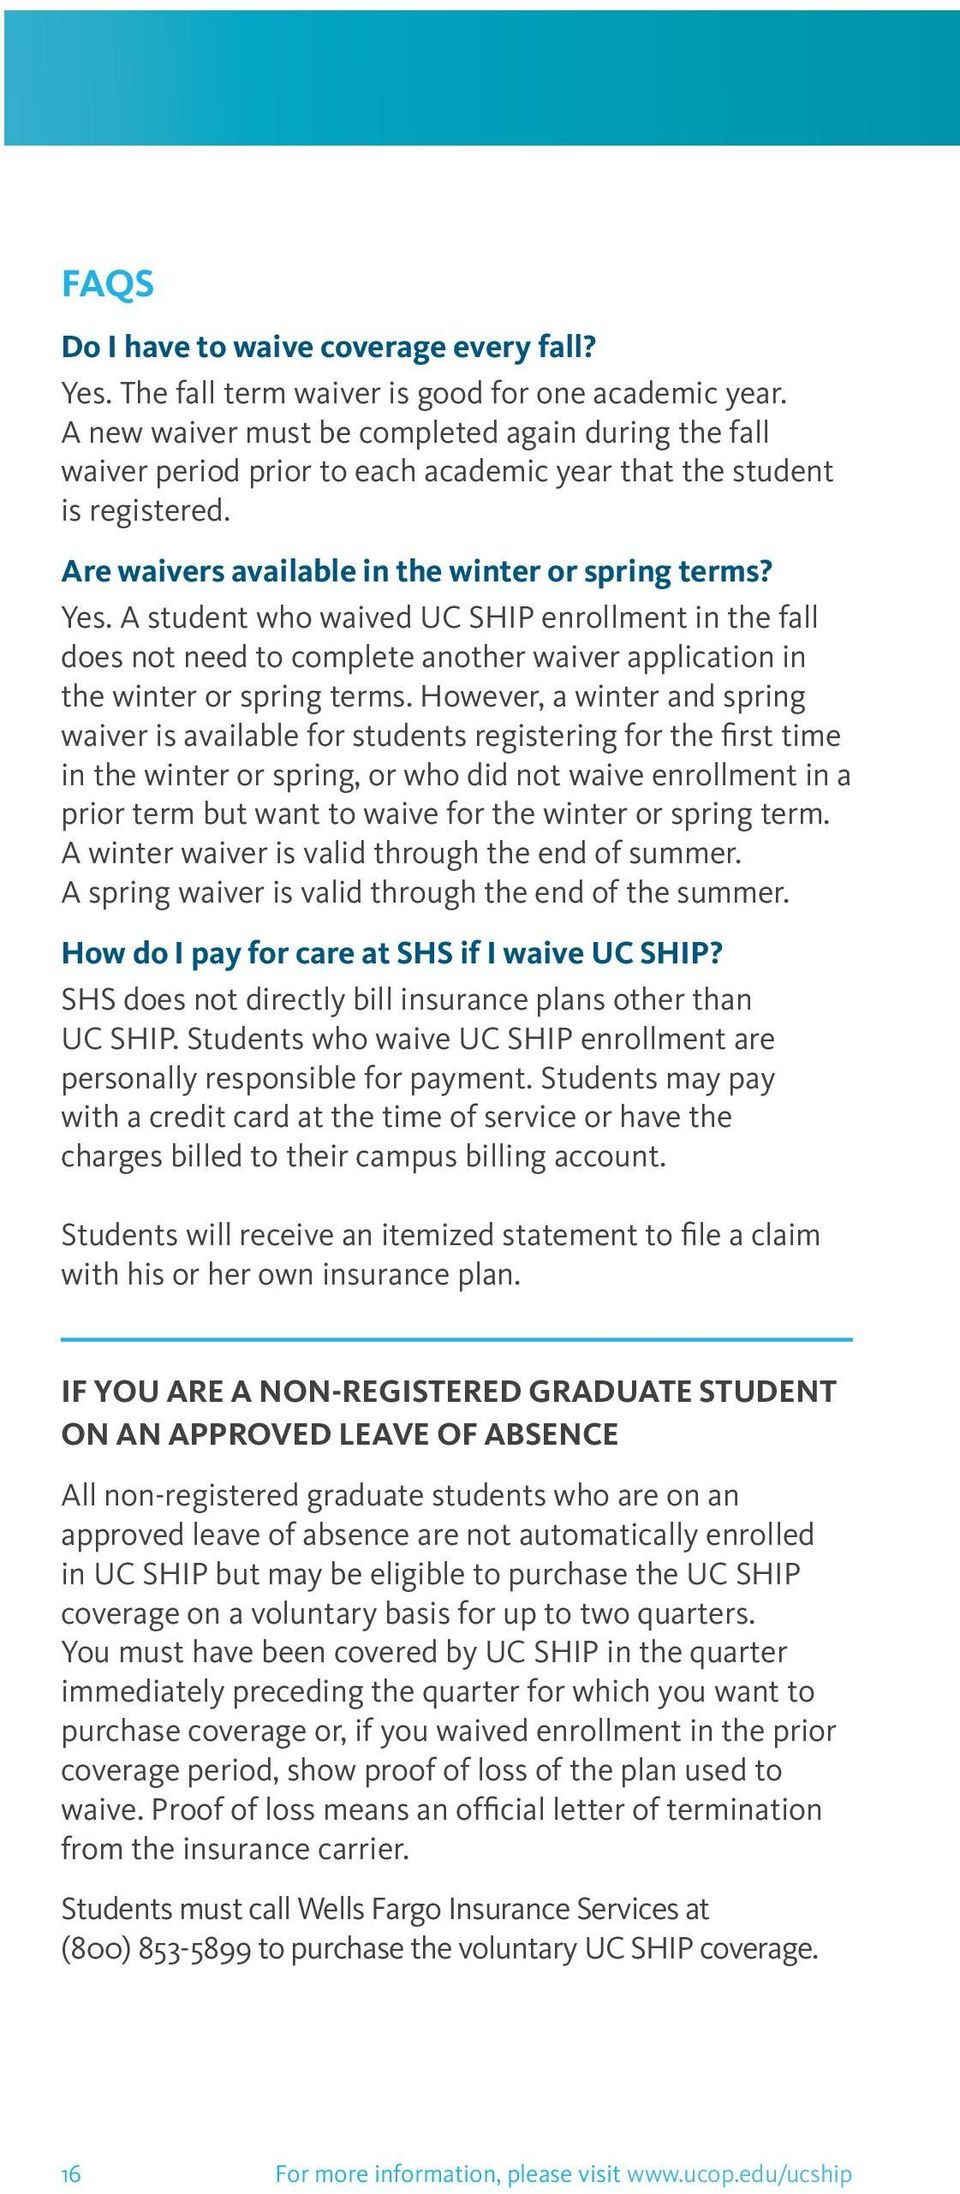 A student who waived UC SHIP enrollment in the fall does not need to complete another waiver application in the winter or spring terms.